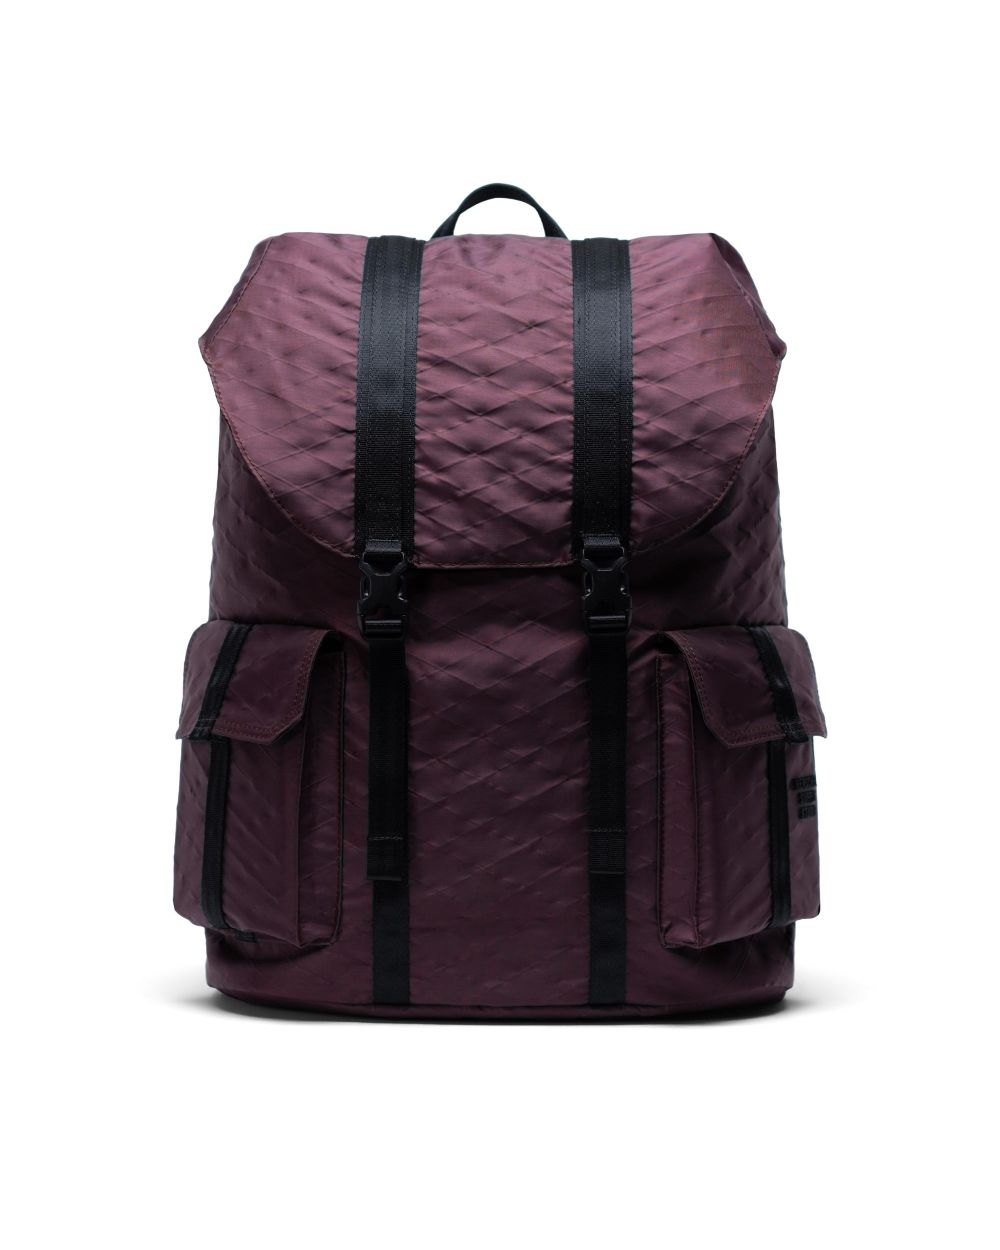 DAWSON BACKPACK XL STUDIO PLUM/BLACK